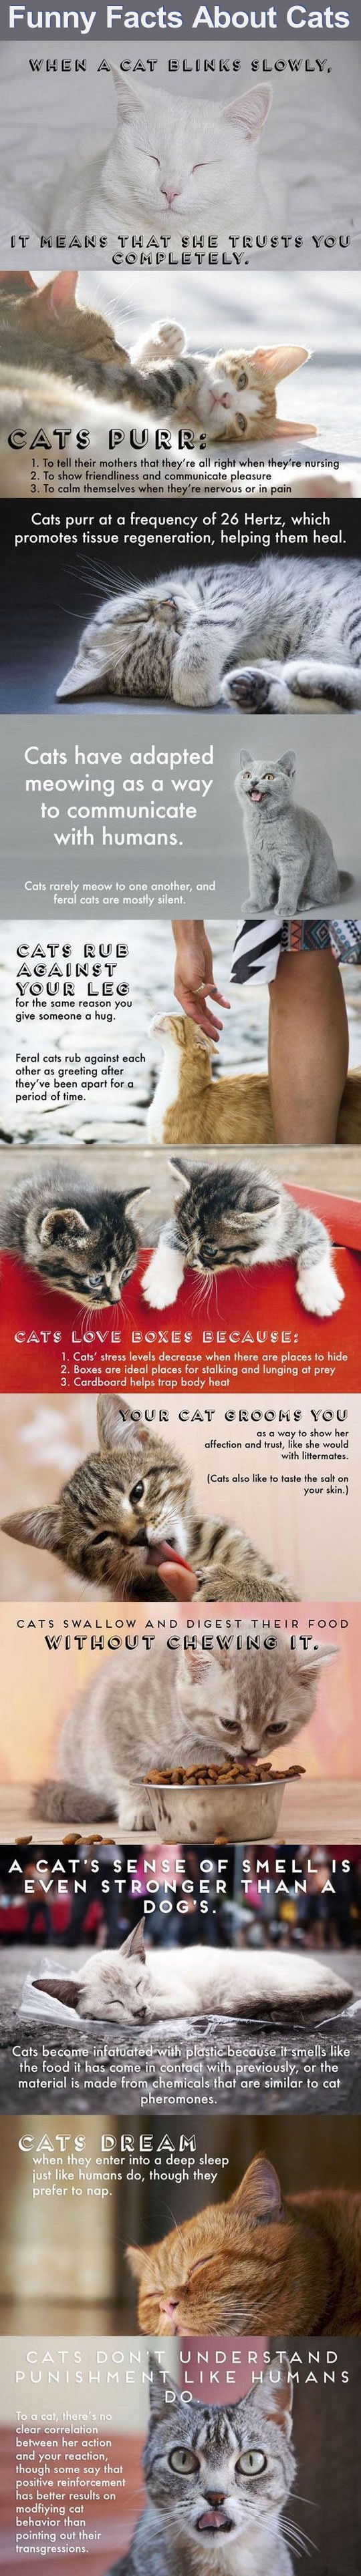 Best Cats Tumblr Ideas On Pinterest Funny Kittens Cat - 18 times tumblr told absolute hilarious truth animals